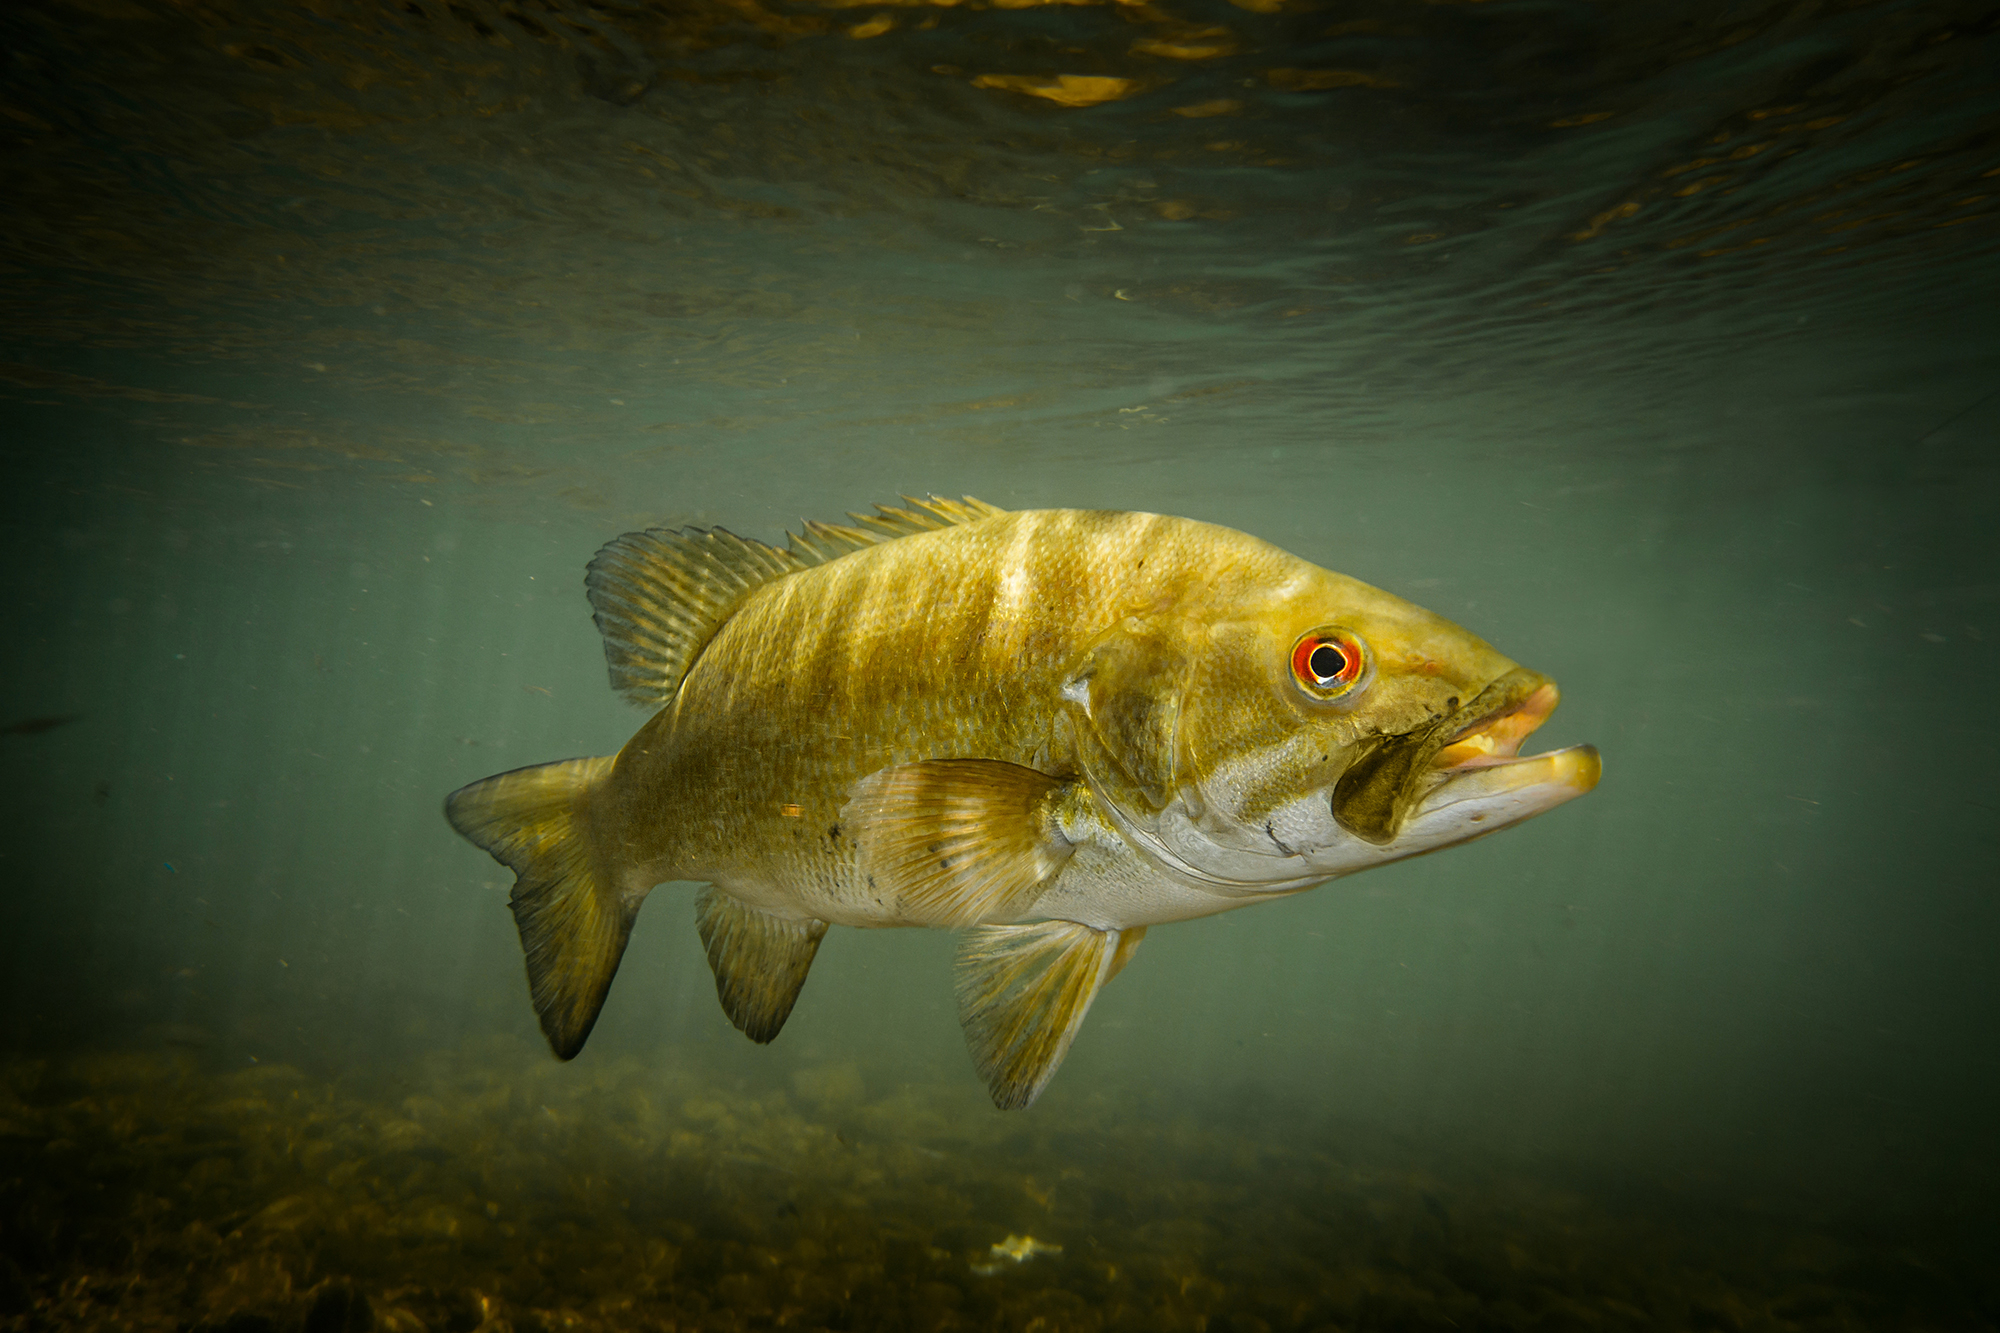 Smallmouth don't typically get their due as beauties of the fly fishing world. Perhaps this stunning underwater shot from Rueben Browning will serve to turn that misconception on its ear.